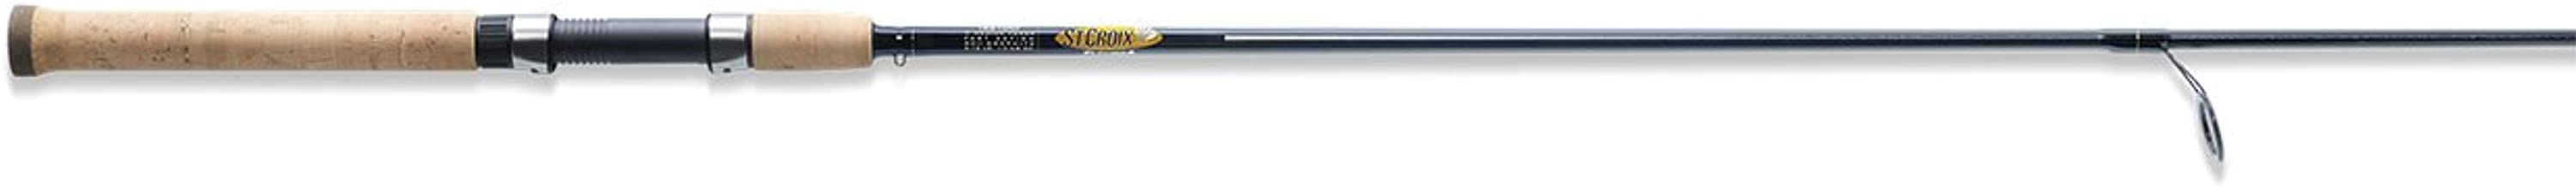 St Croix Triumph Spinning Rods